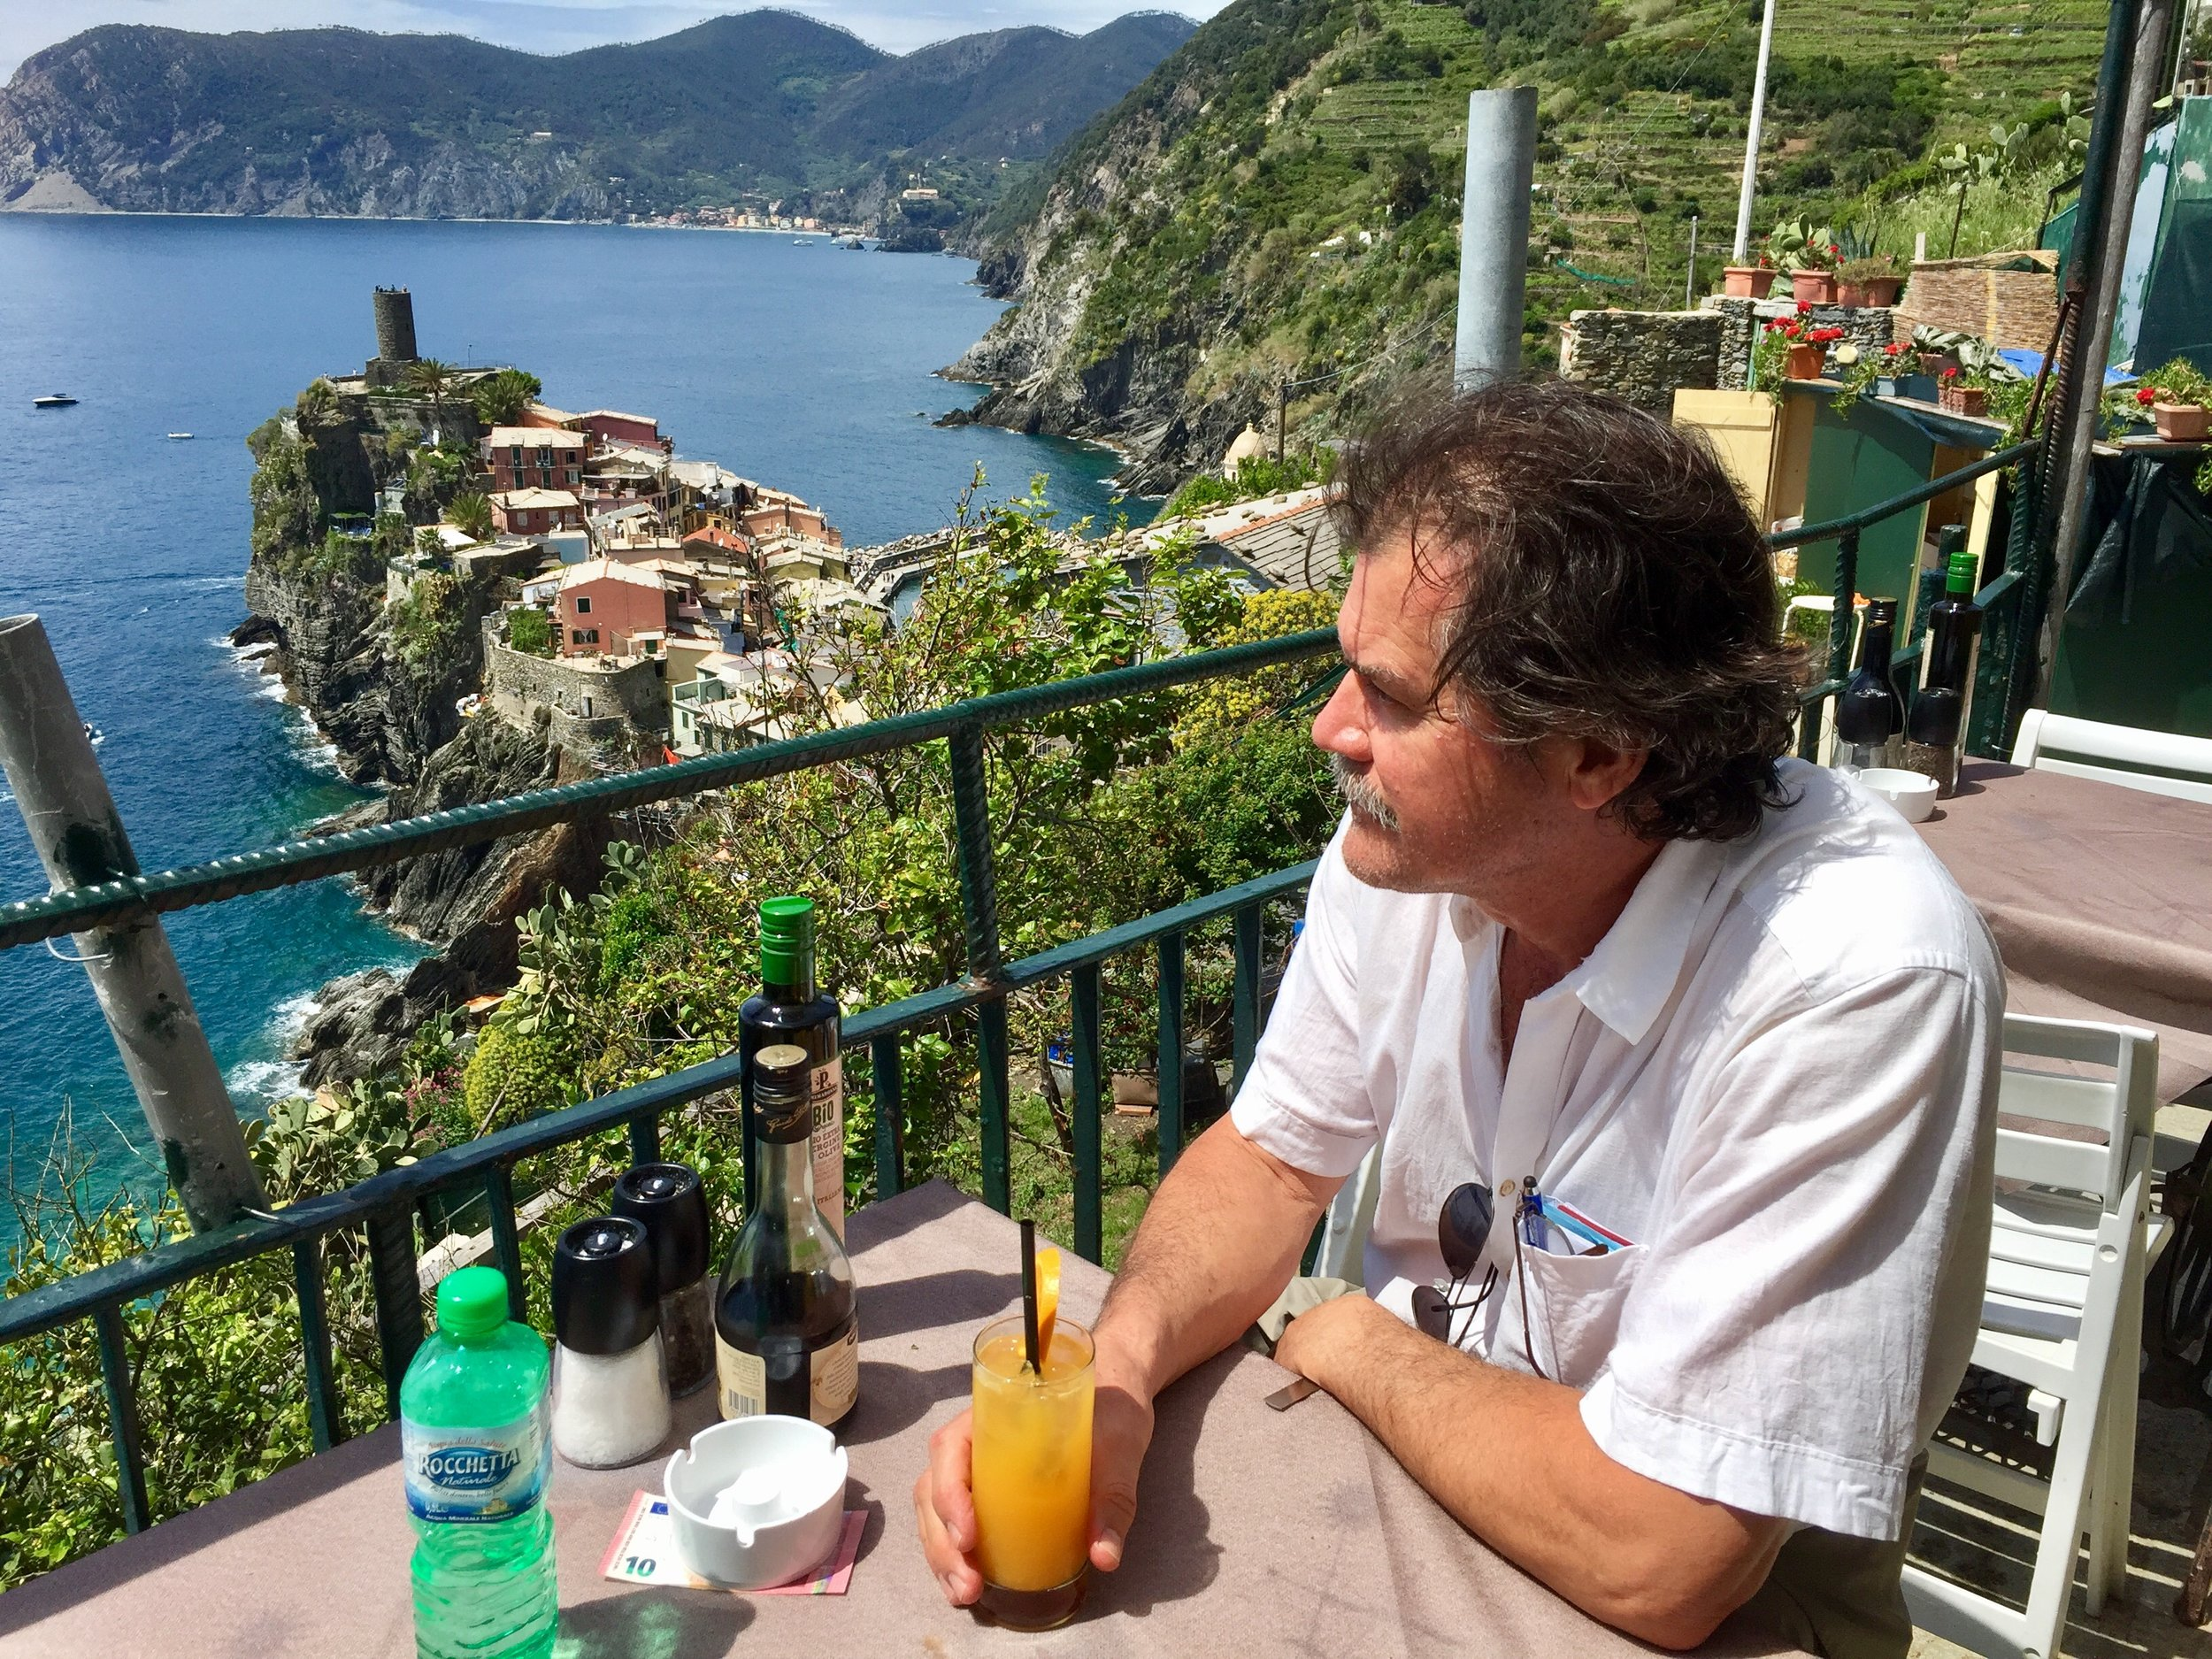 Most of the group hiked part of the trail from Vernazza to Corniglia to  go to La Torre bar for a morning screwdriver made with fresh squeezed oranges.